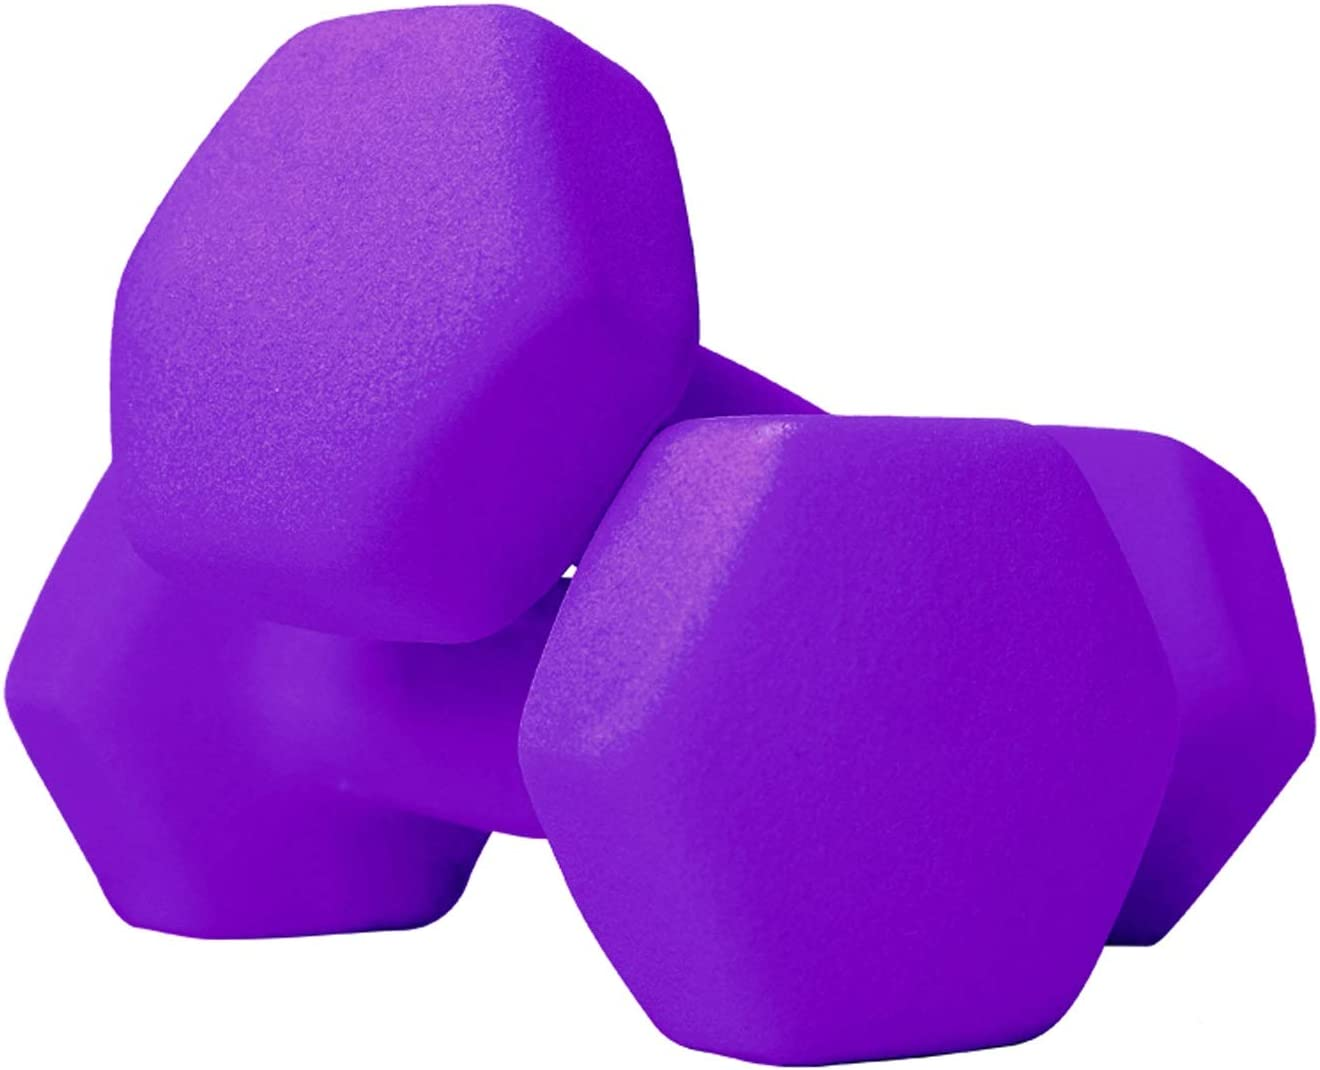 Dumbbell Set Fitness Hand Weight Home Save money latest Dumbbells Weights